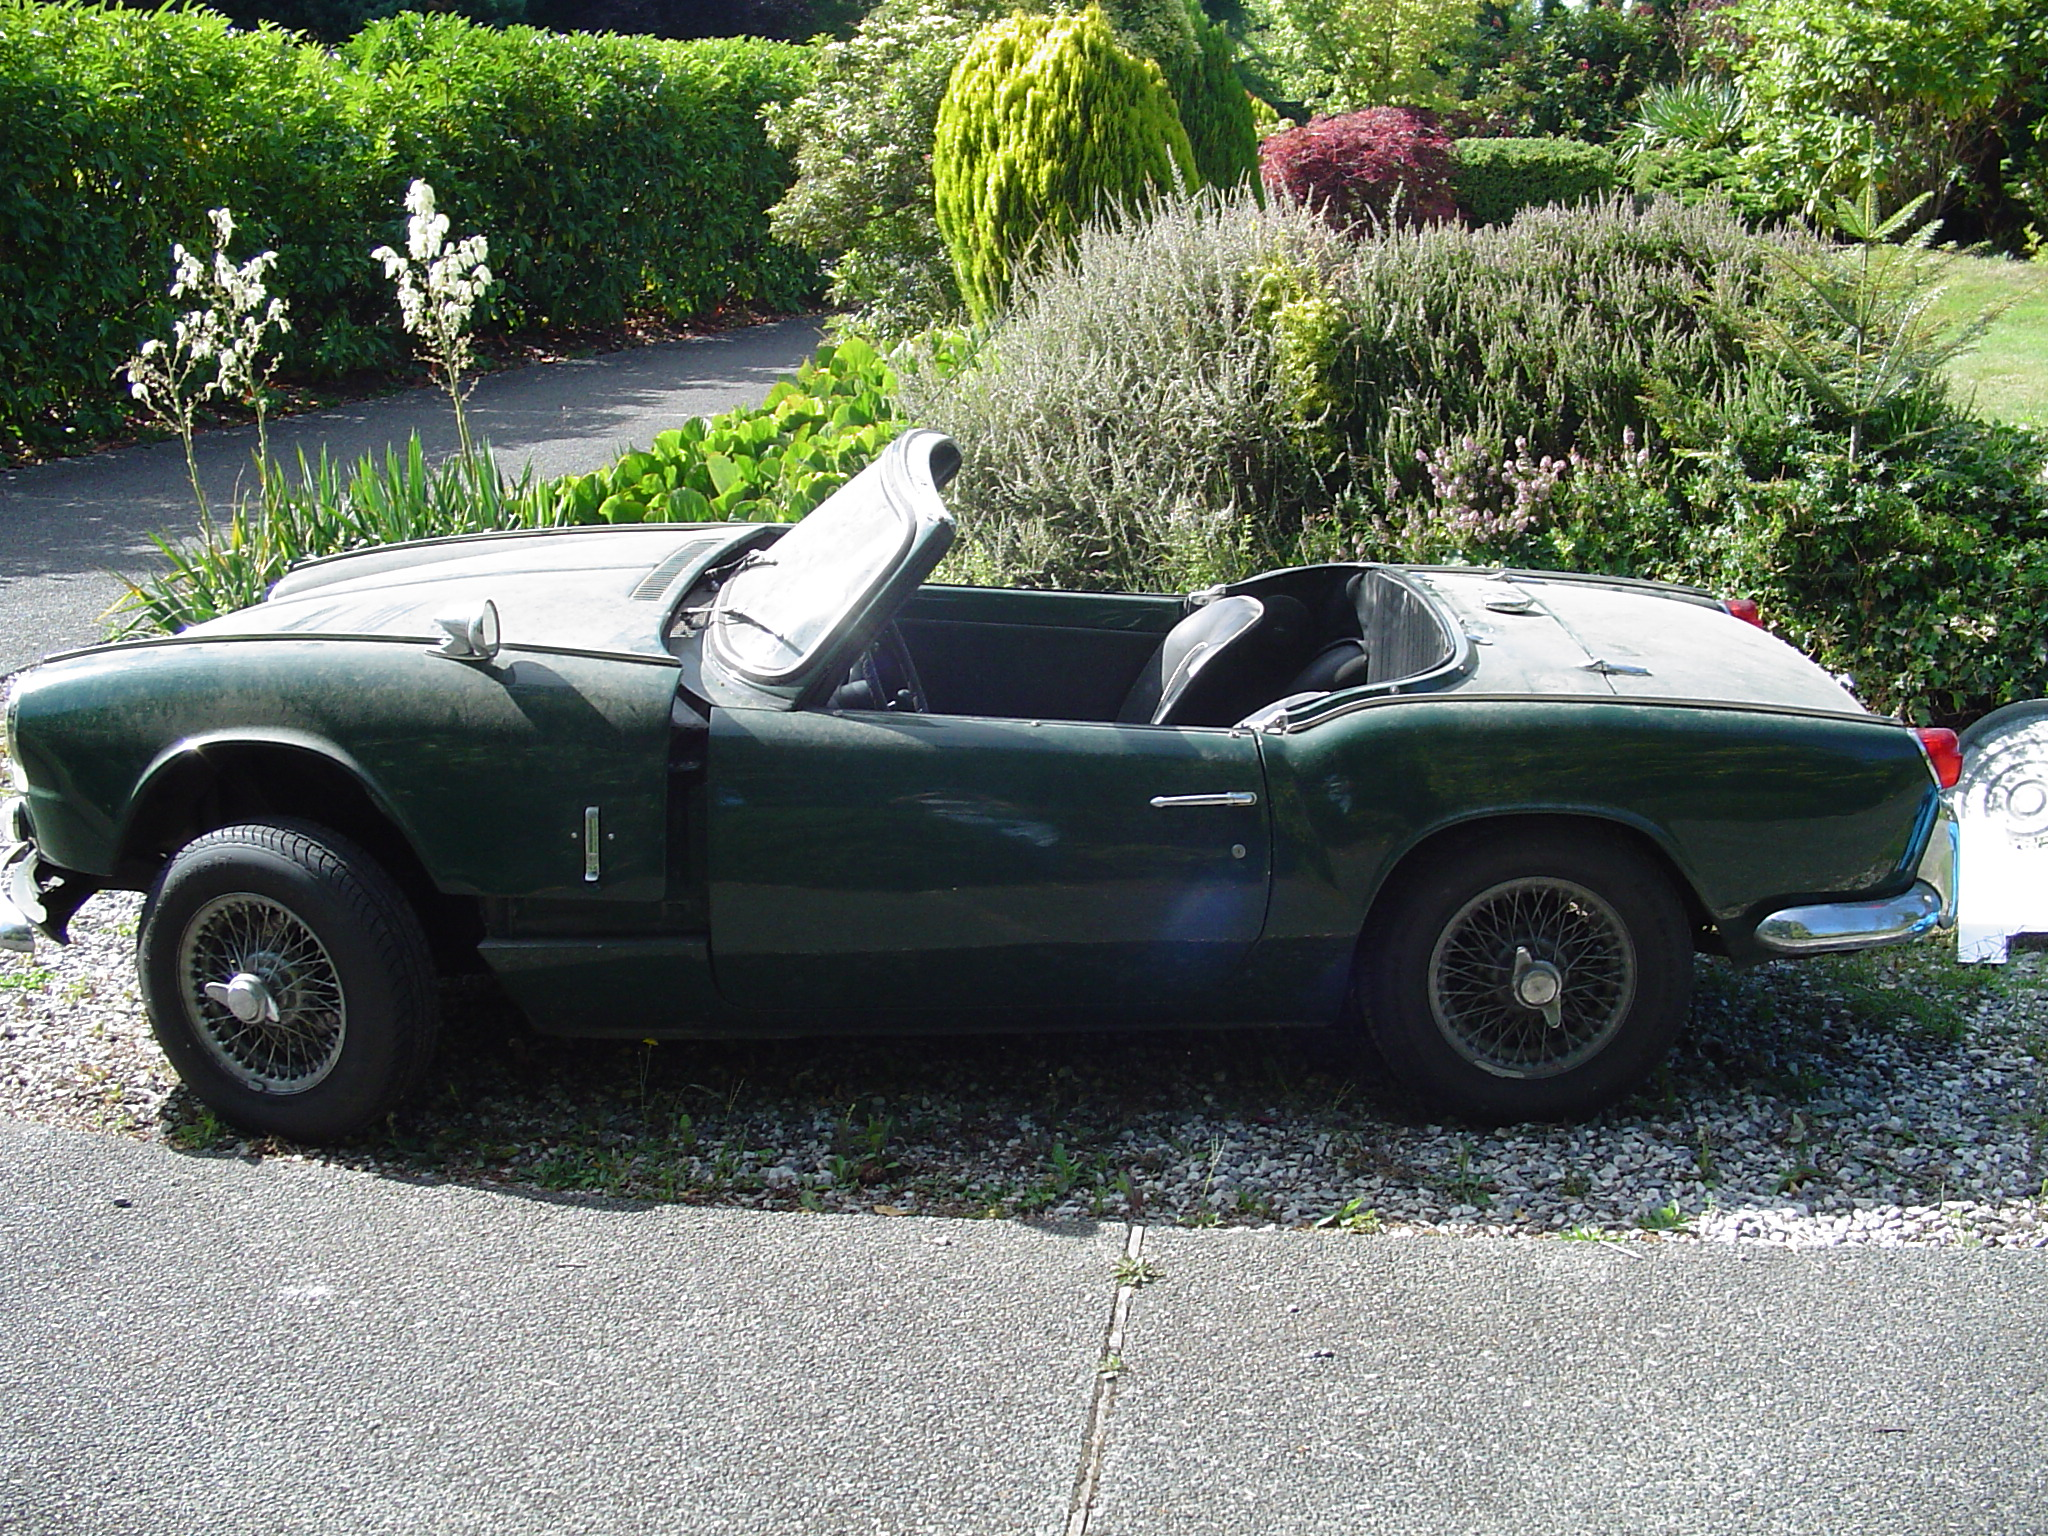 Triumph Spitfire Sensations Petit Prix in addition Spitfire1 in addition Trek Domane Geometry likewise Registrospitfire likewise TriumphspitfireMKIV. on triumph spitfire